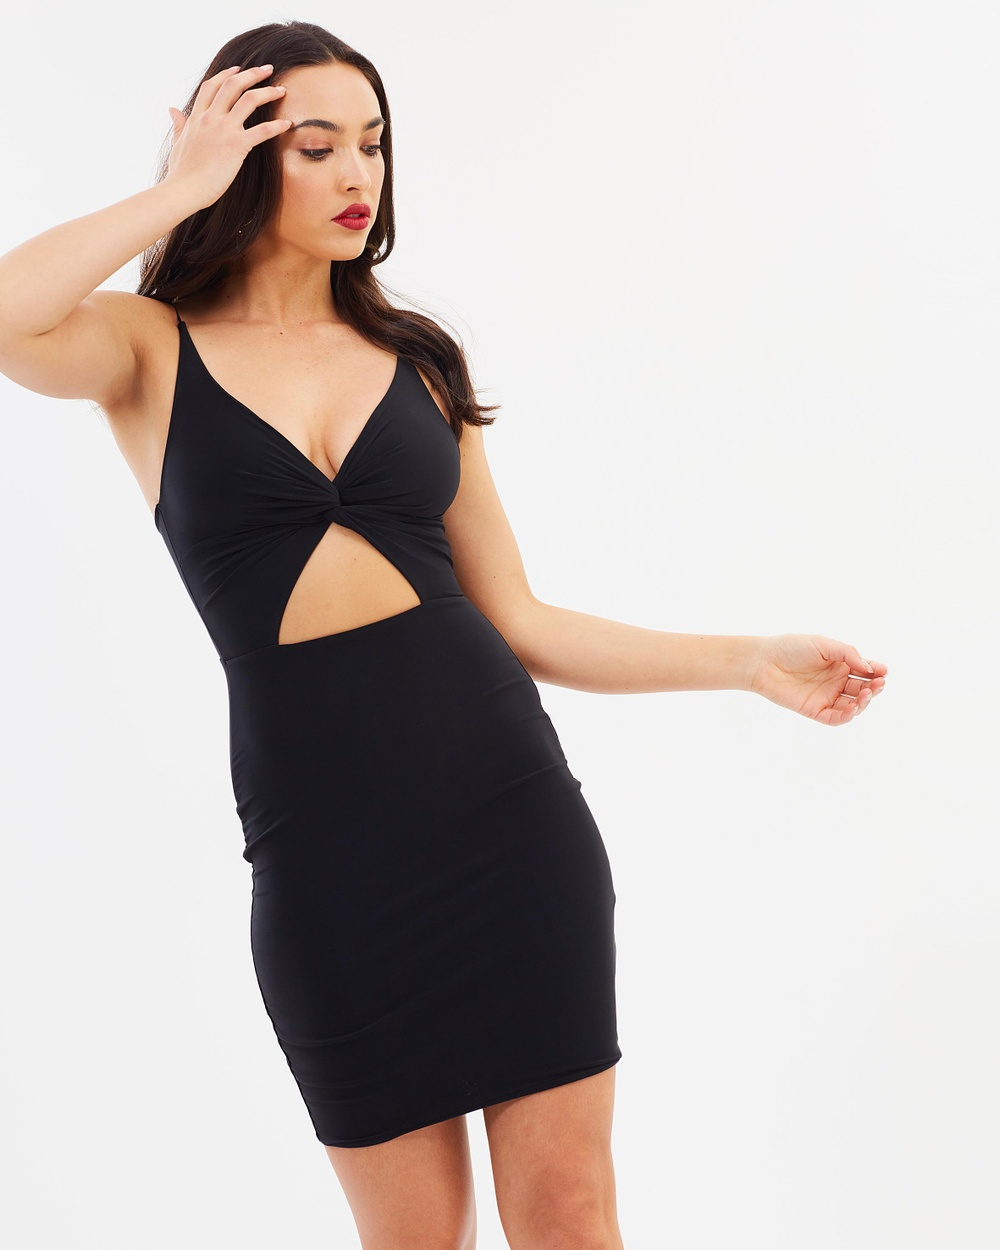 Missguided Slinky Twist Front Cut Out Bodycon Dress Bodycon Dresses Black Slinky Twist Front Cut Out Bodycon Dress